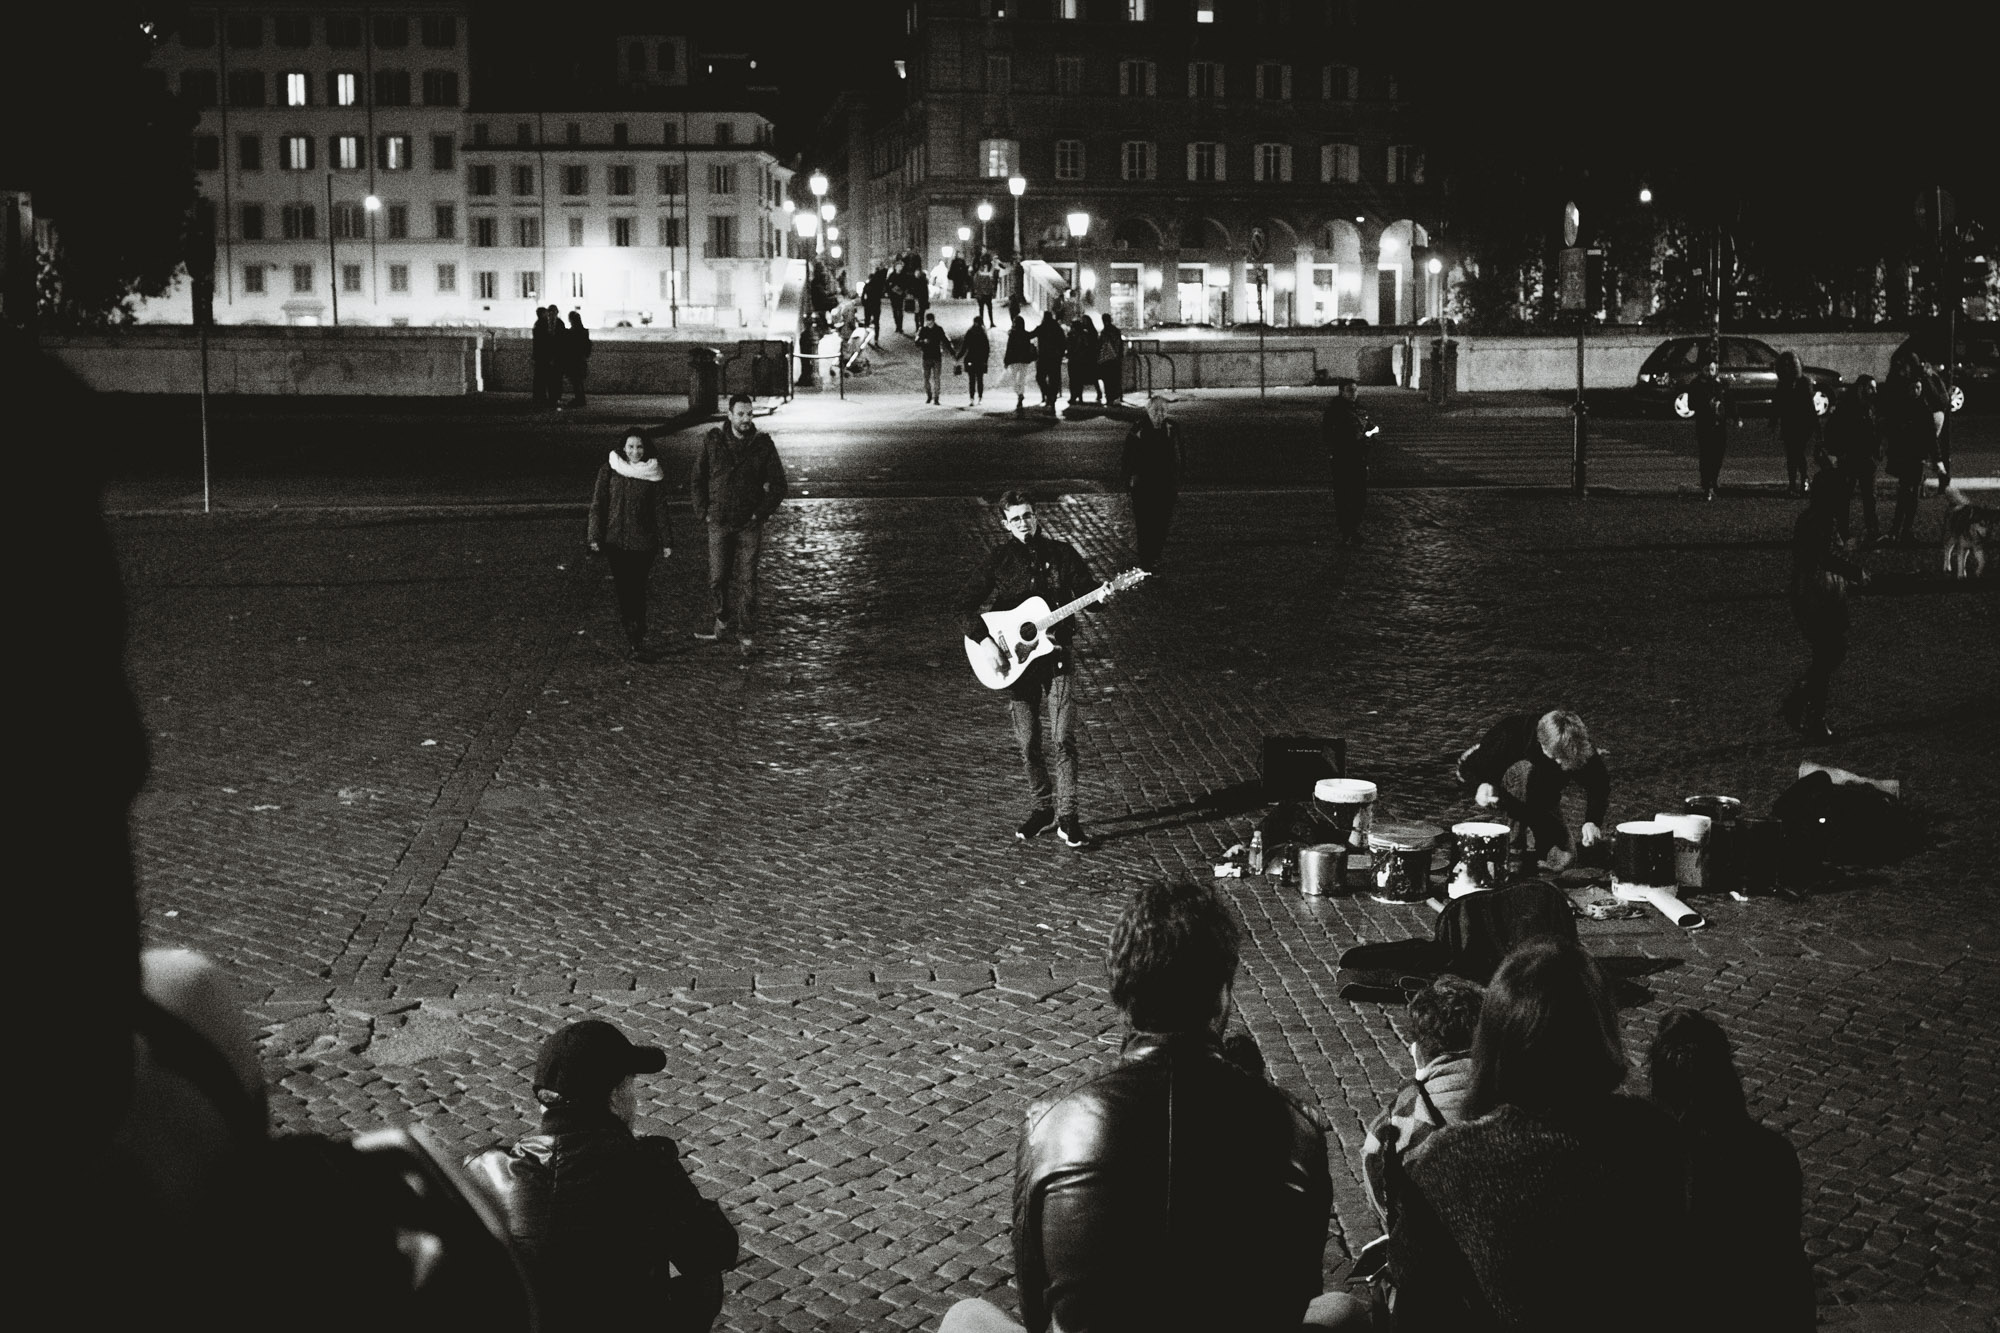 Street musician performing at night at Piazza Trilussa in Trastevere Rome